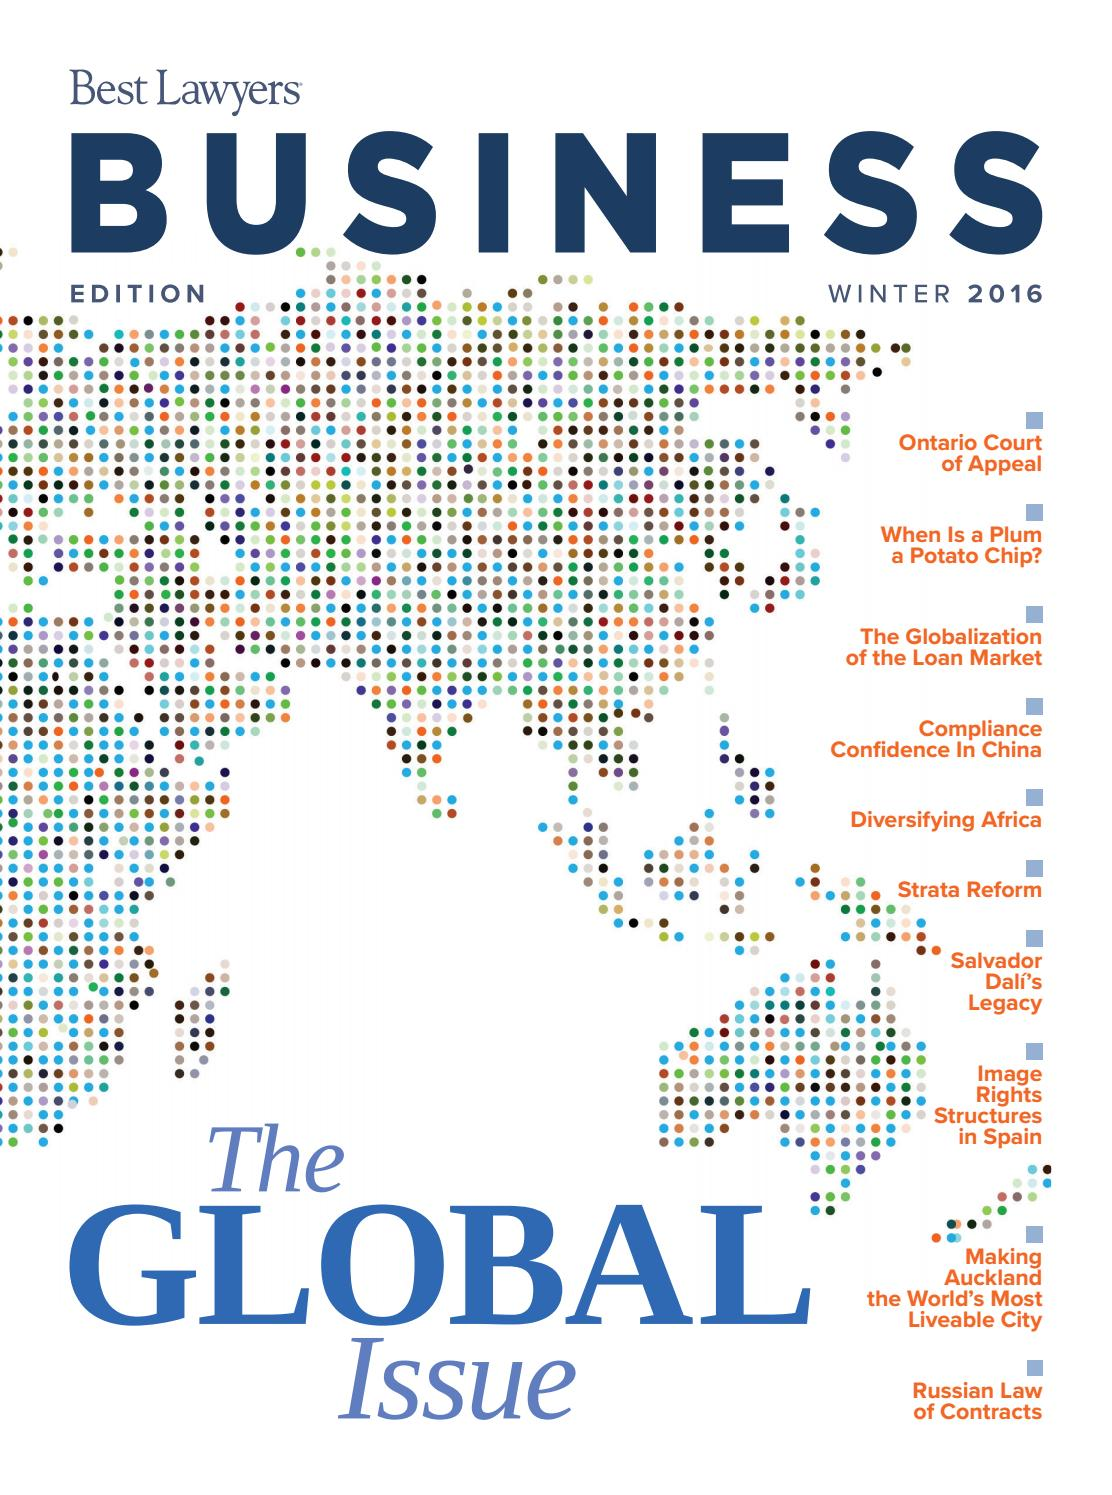 best lawyers in pennsylvania 2017 by best lawyers issuu global business issue winter 2016